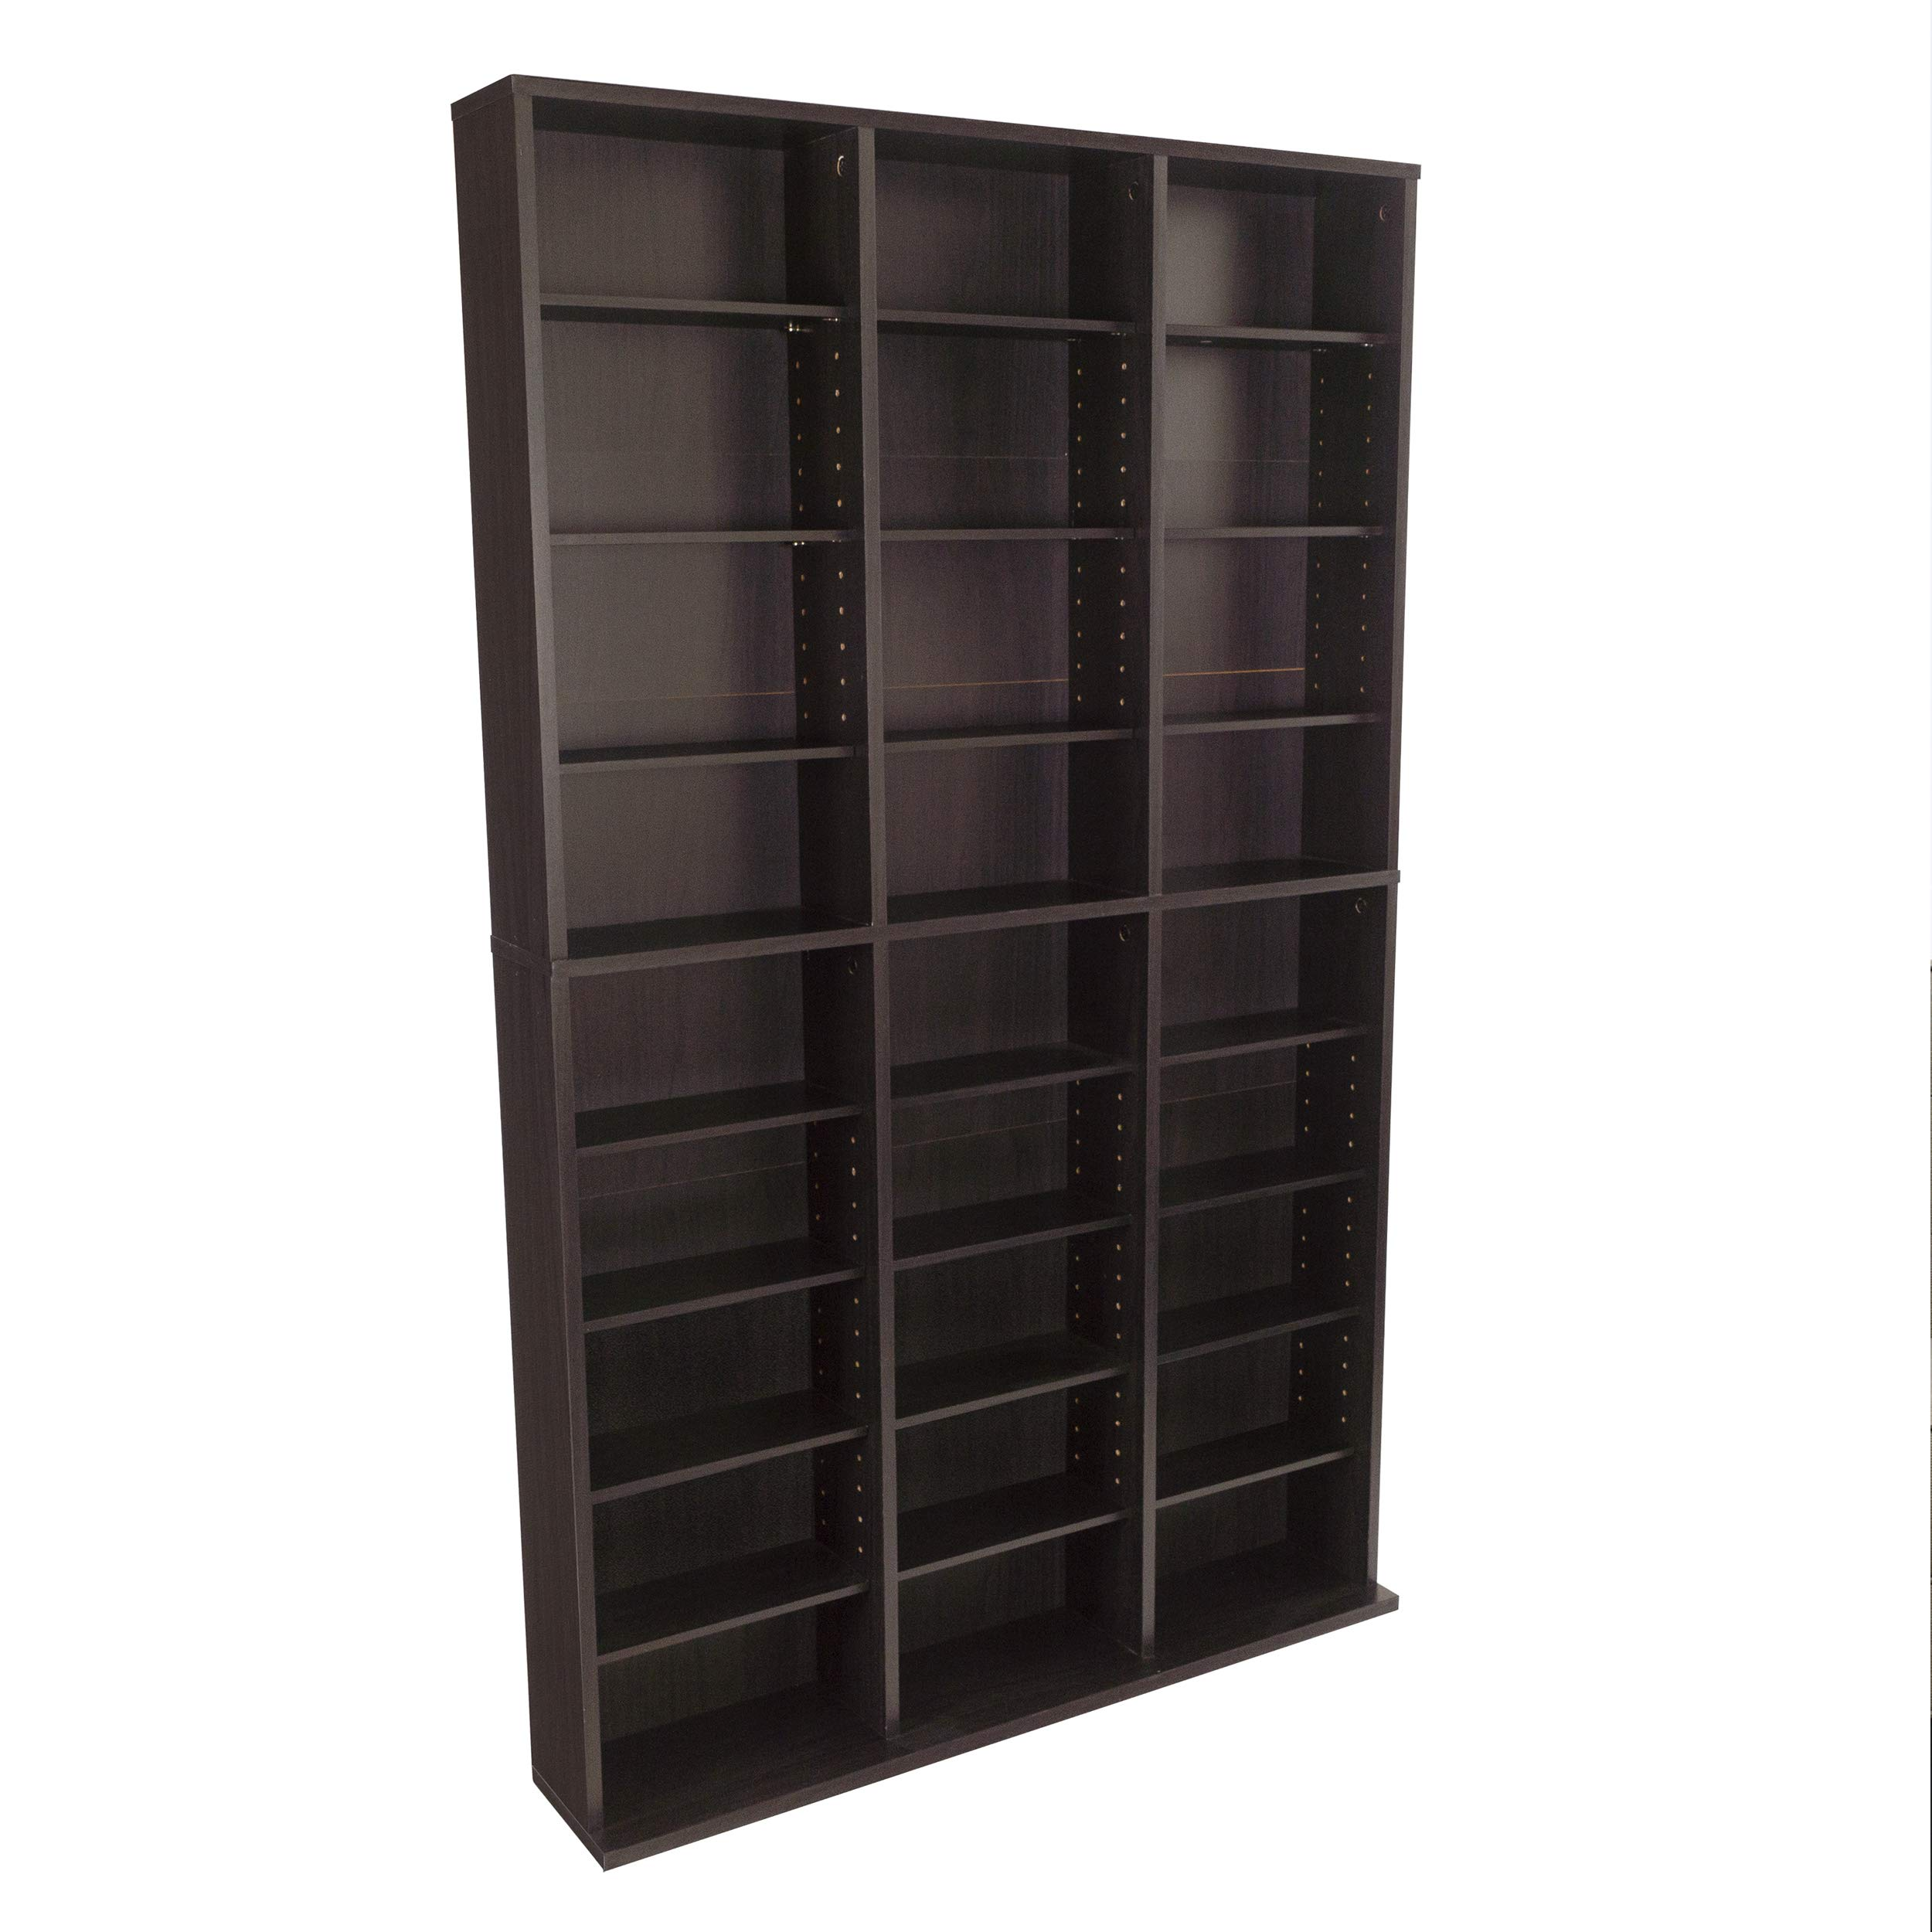 Atlantic Oskar Adjustable Media Wall-Unit - Holds 756 CDs, 360 DVDs or 414 Blu-Rays/Games, 21 Adjustable and 6 fixed shelves PN38435713 in Espresso by Atlantic